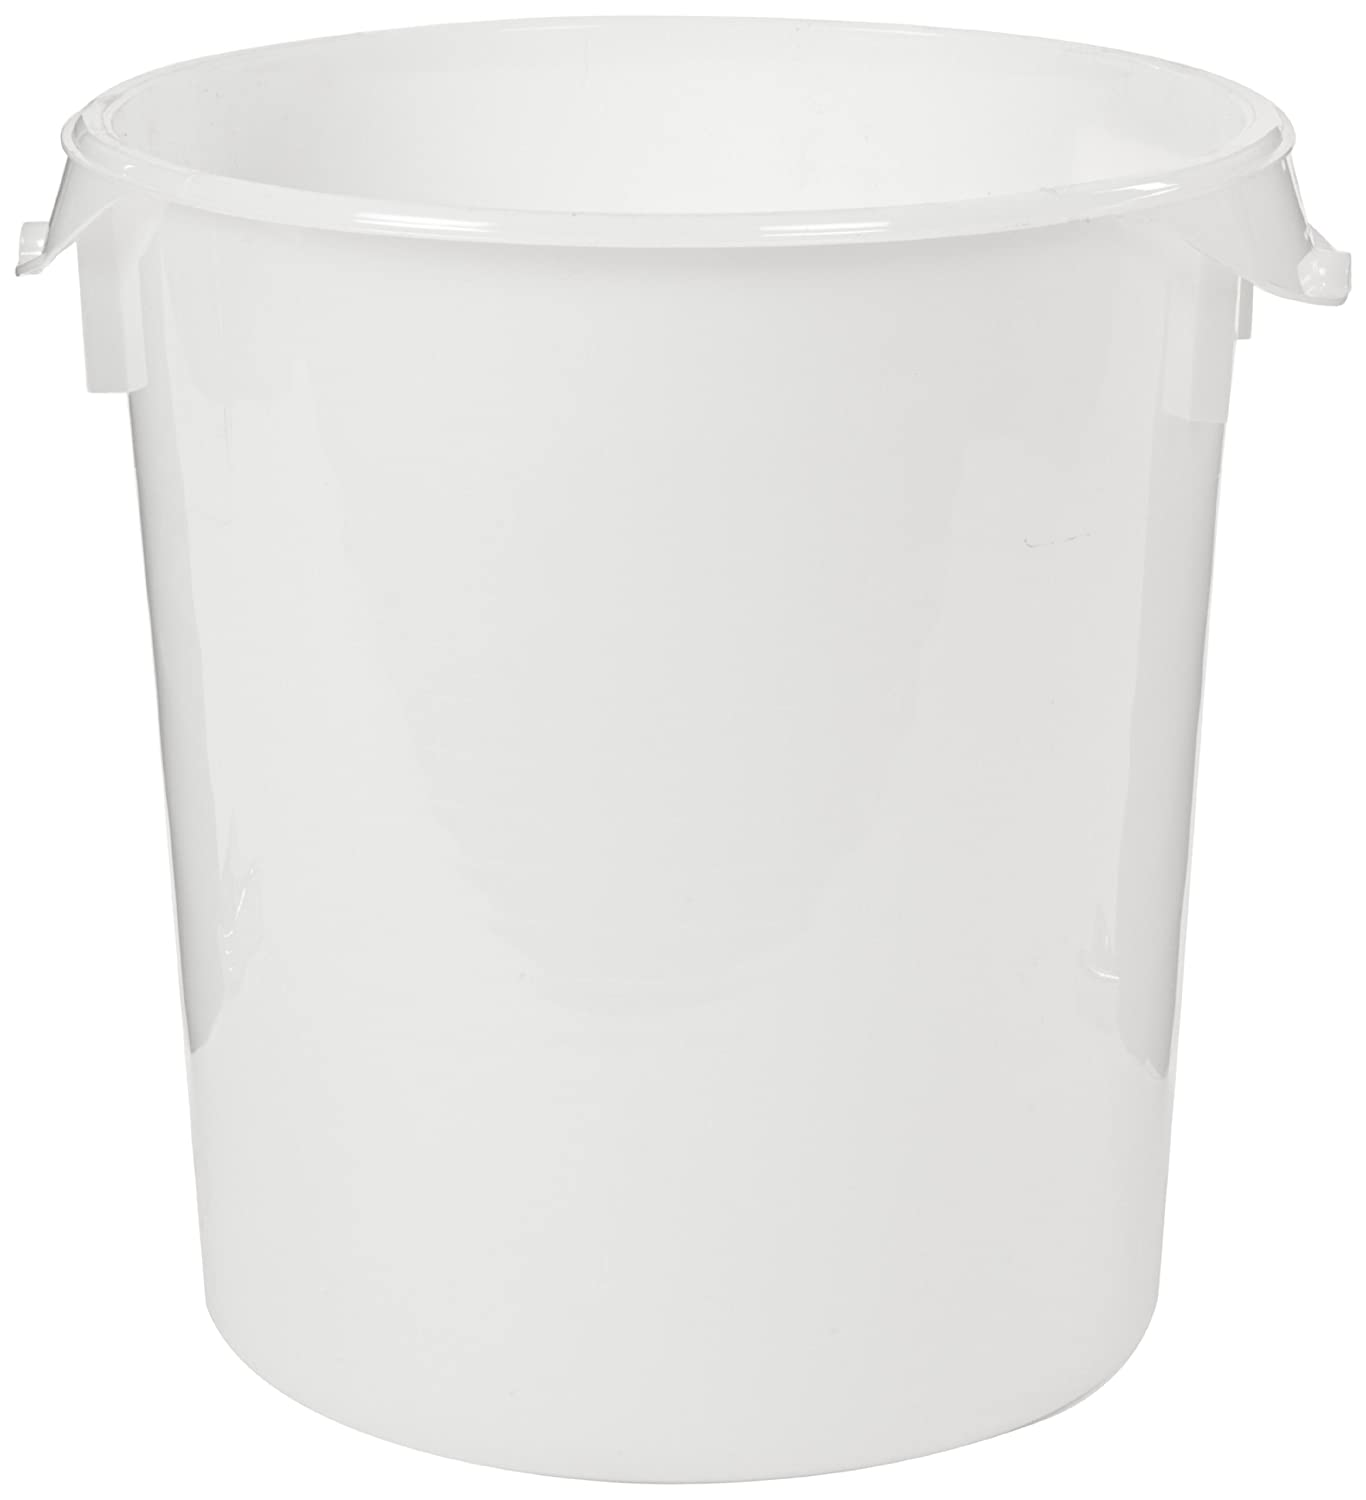 Rubbermaid Commercial Products Plastic Round Food Storage Container for Kitchen/Food Prep/Storing, 22 Quart, White, Container Only (FG572800WHT)